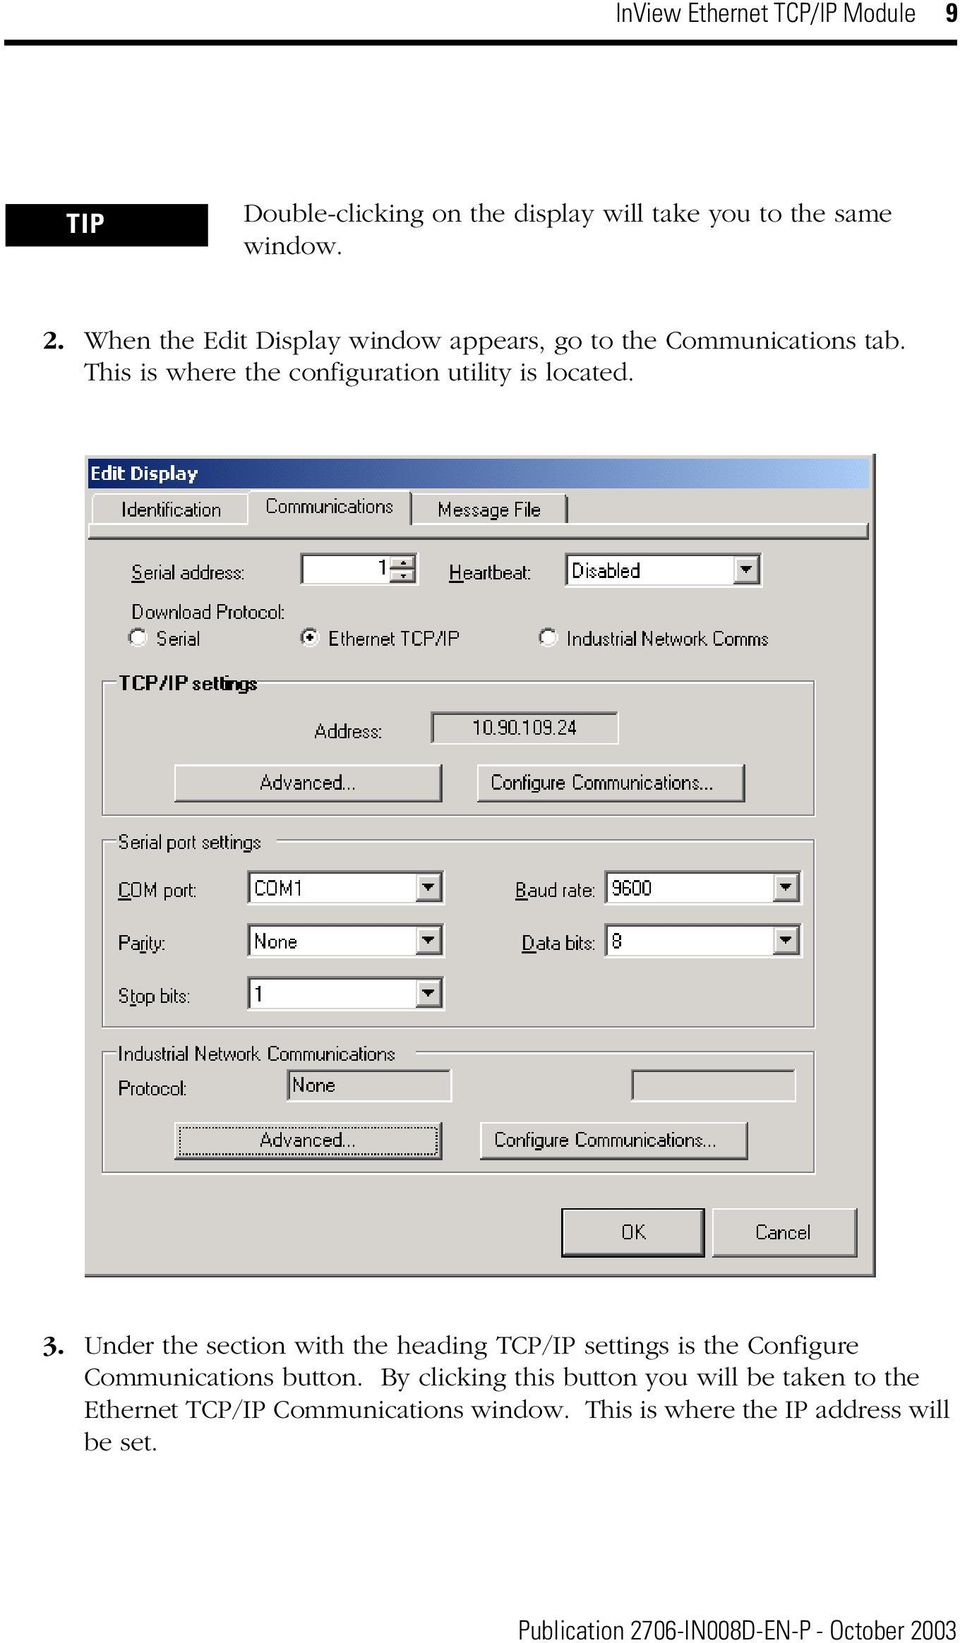 Under the section with the heading TCP/IP settings is the Configure Communications button.